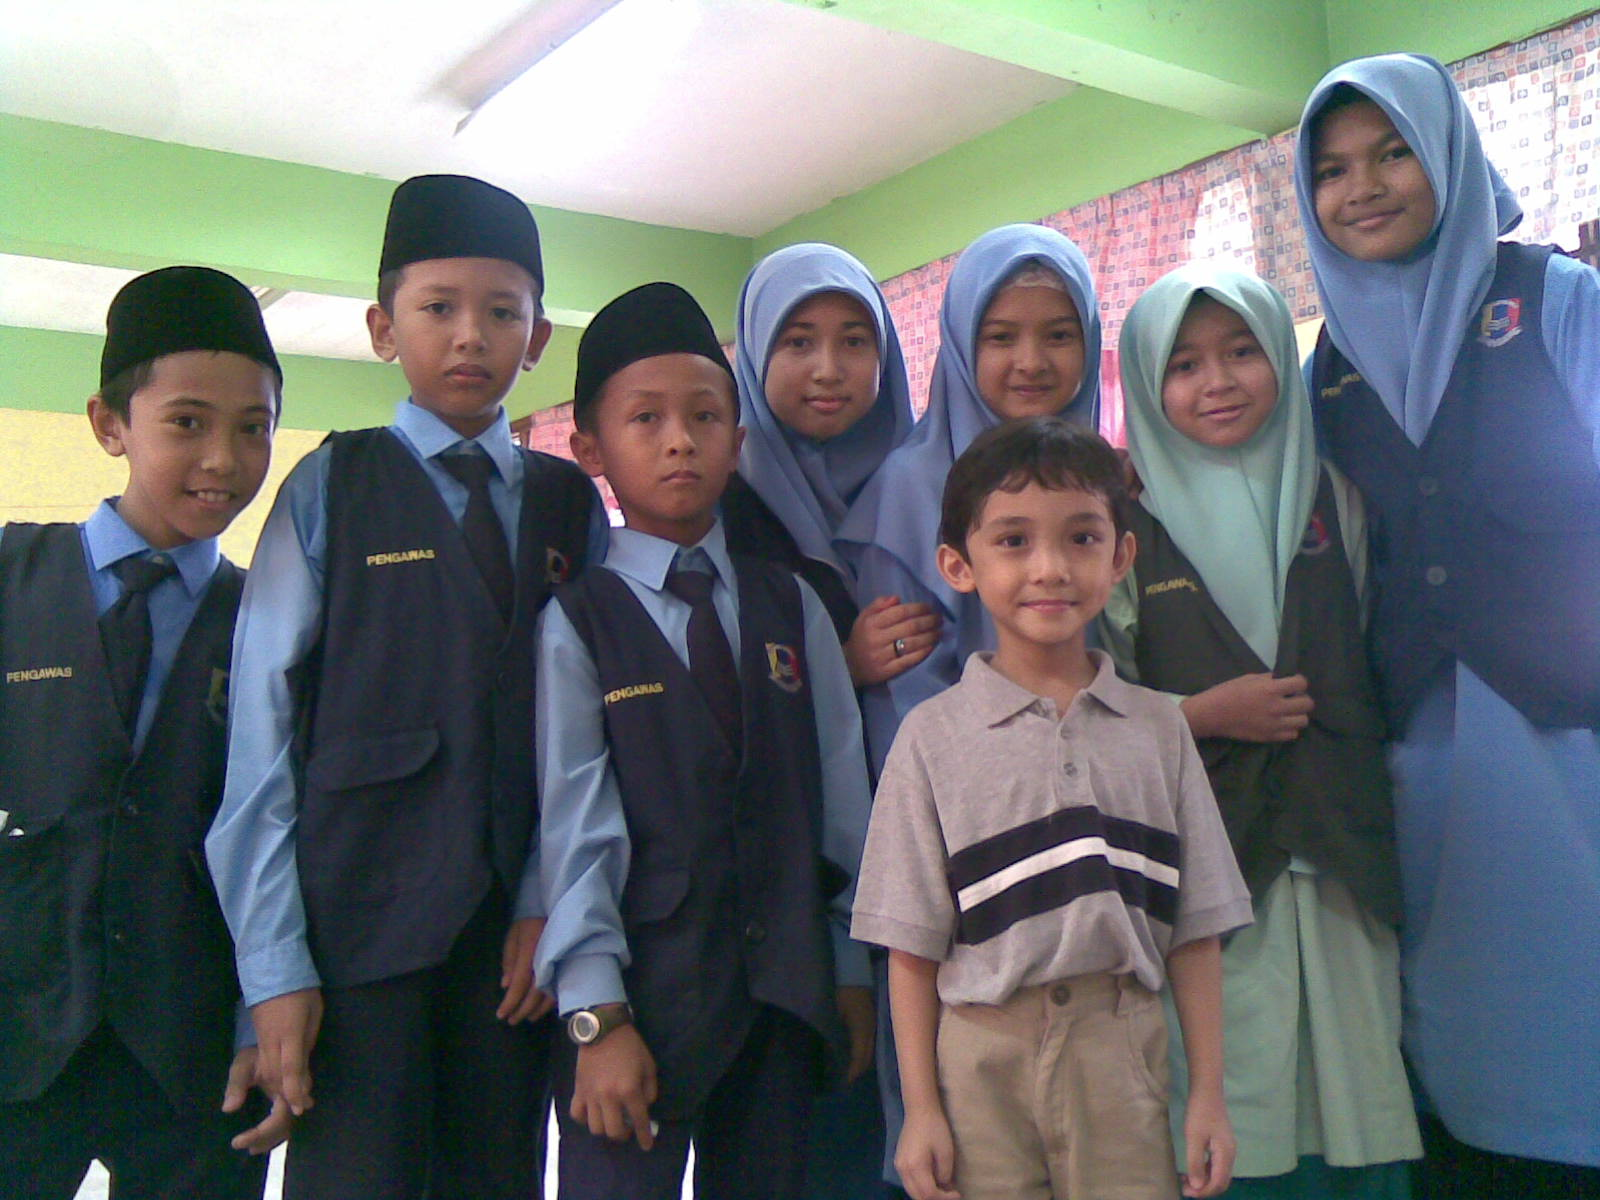 My little brother, Ahmad Ali, made new friends at the school. The girl in the middle (beside the boy) is Syazaliana. Perhaps she would name the rest of her friends for me...